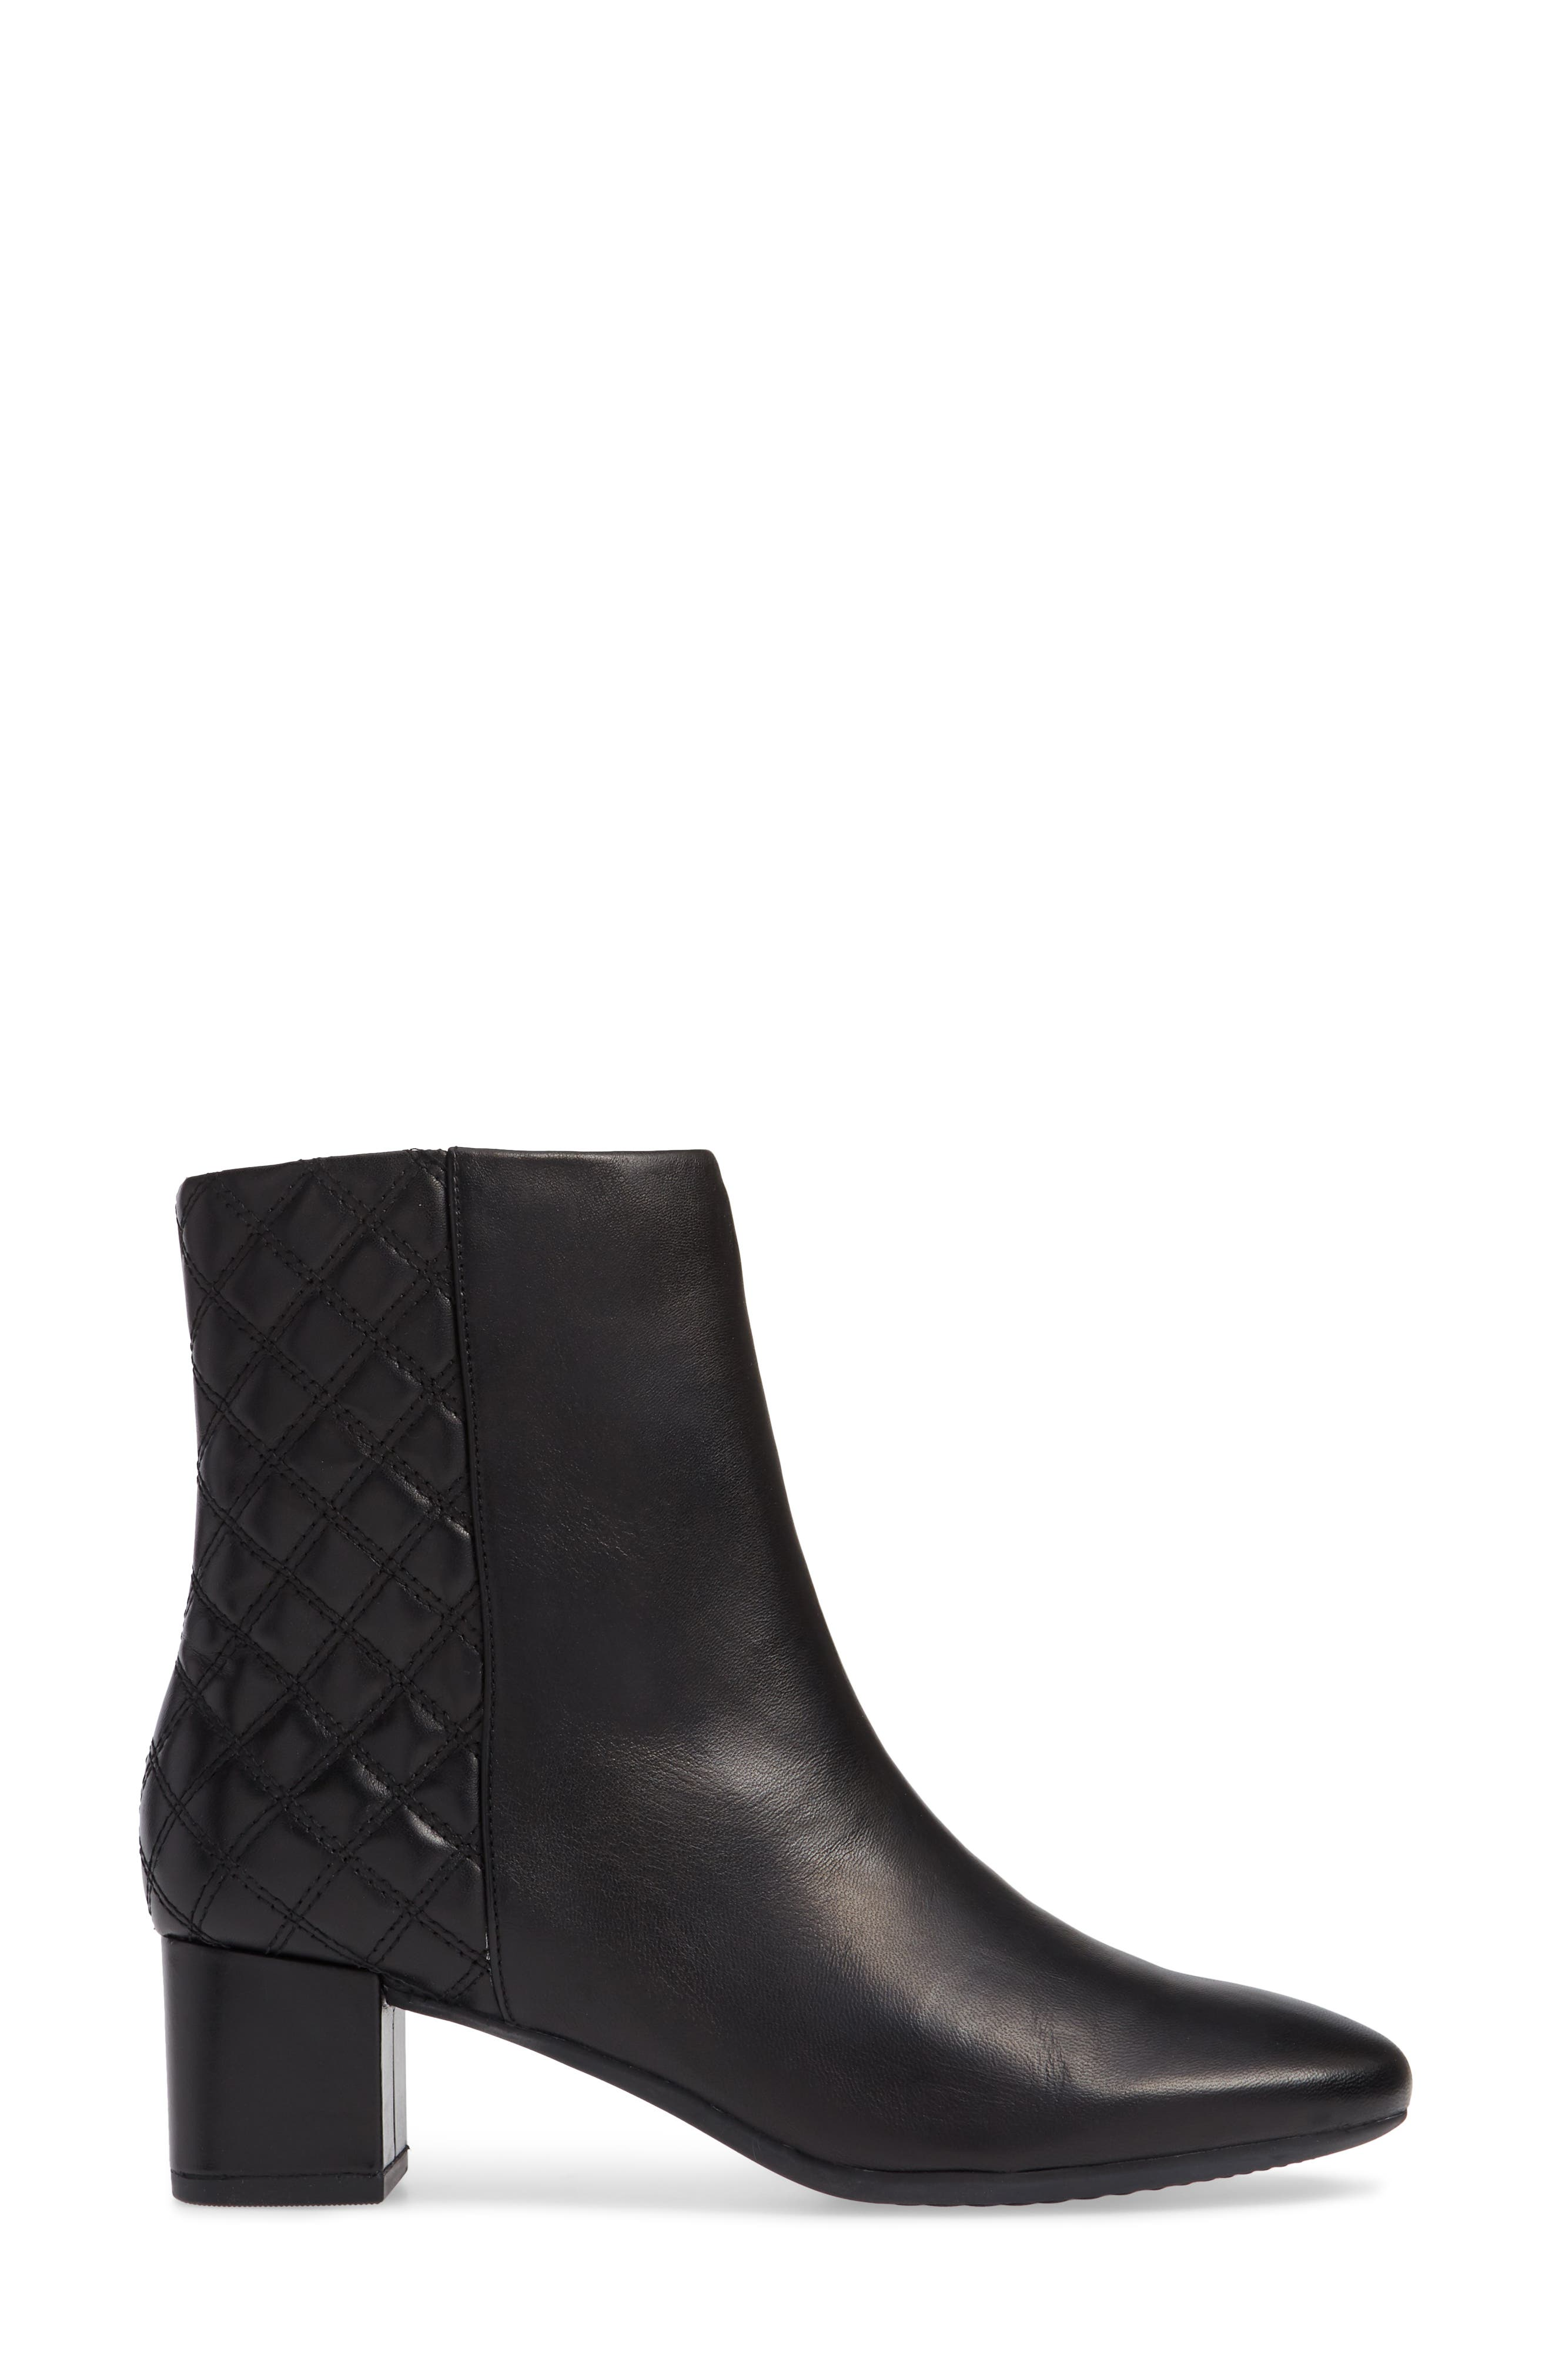 CLARKS<SUP>®</SUP>, Tealia Luck Bootie, Alternate thumbnail 3, color, BLACK LEATHER